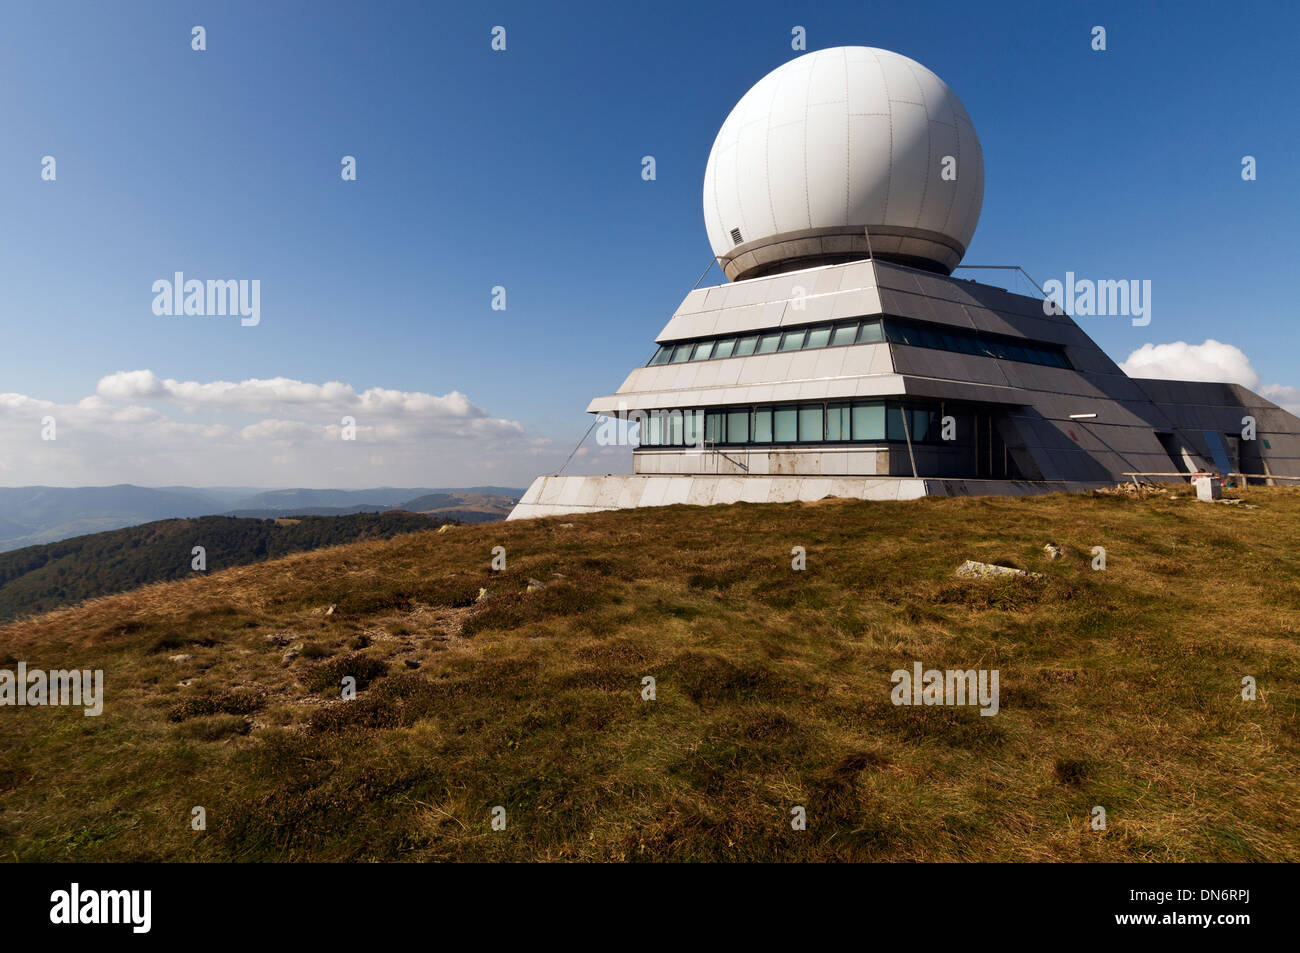 Elk213-2988 France, Alsace, Route des Cretes, Grand Ballon air traffic control facility - Stock Image